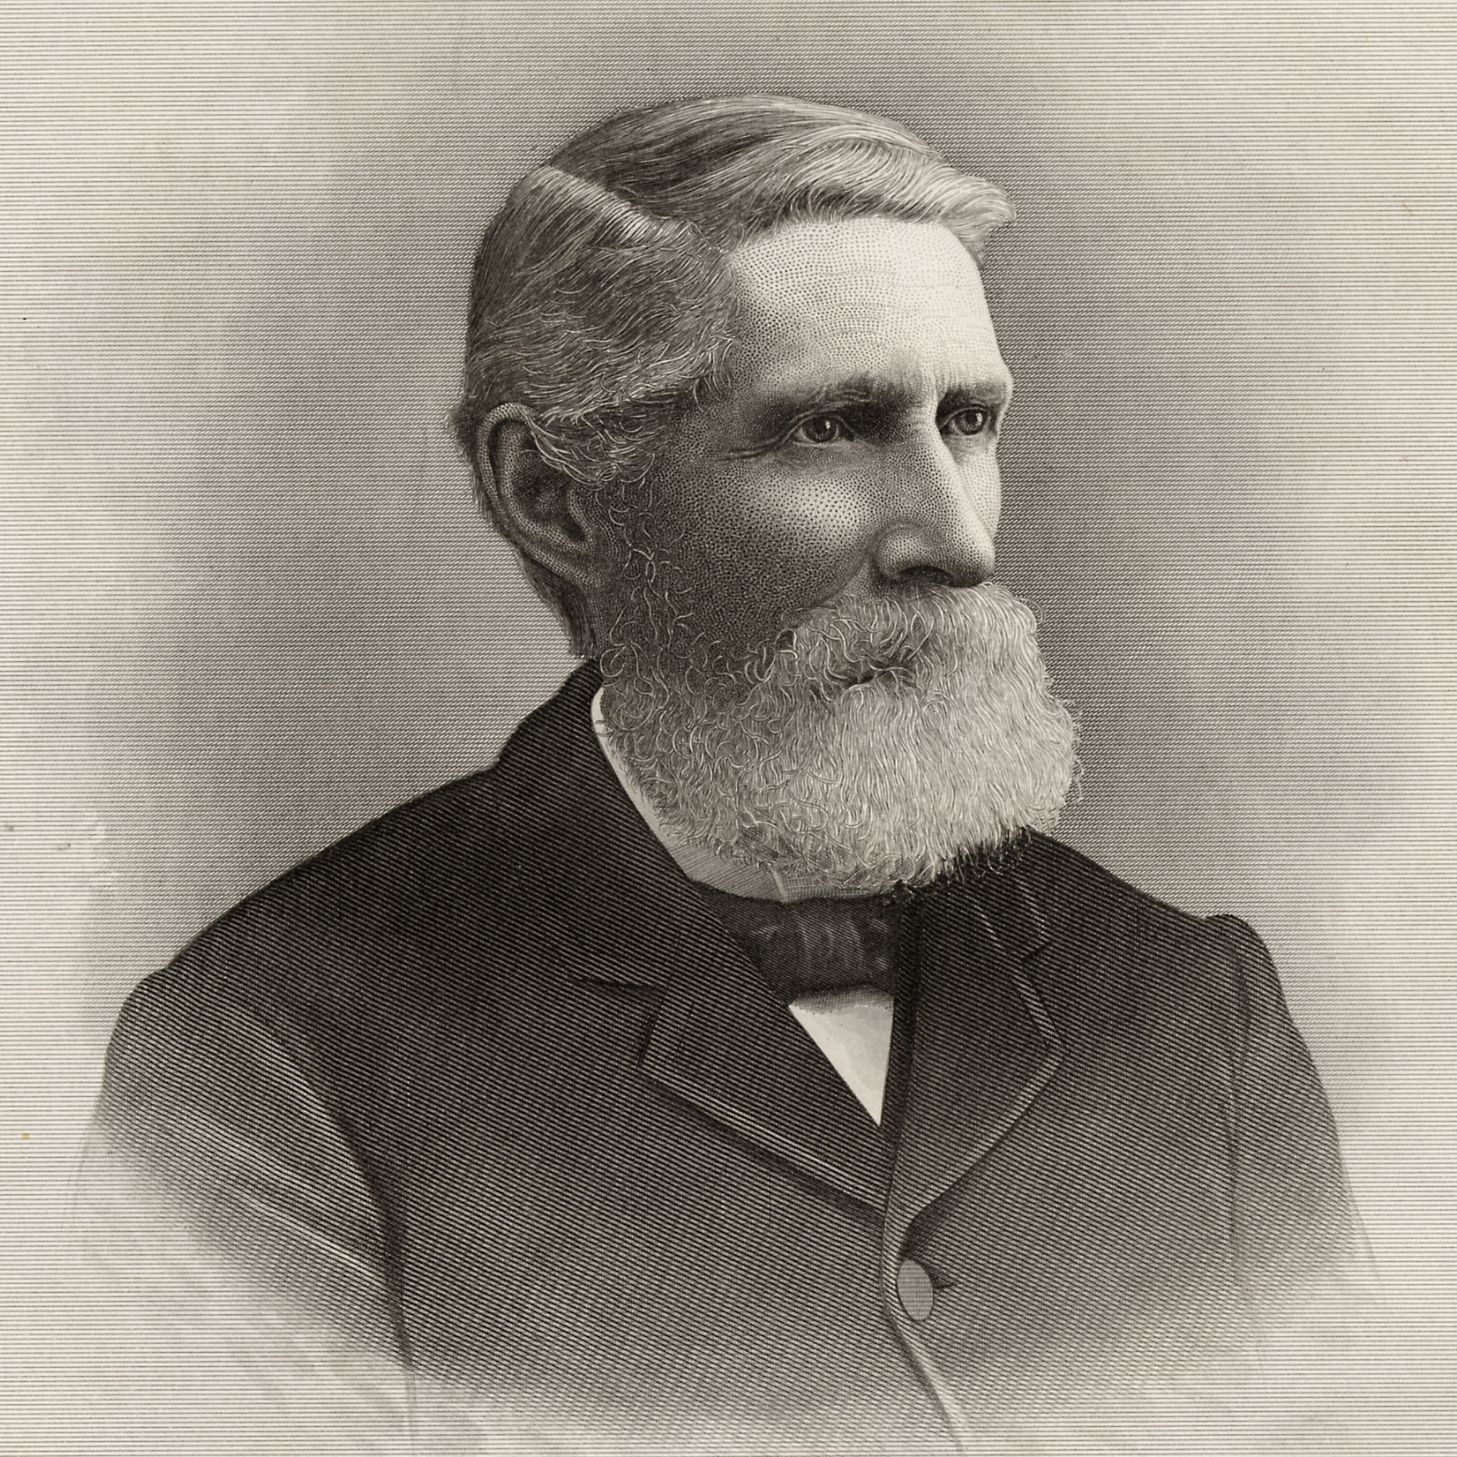 John Brown in 1890